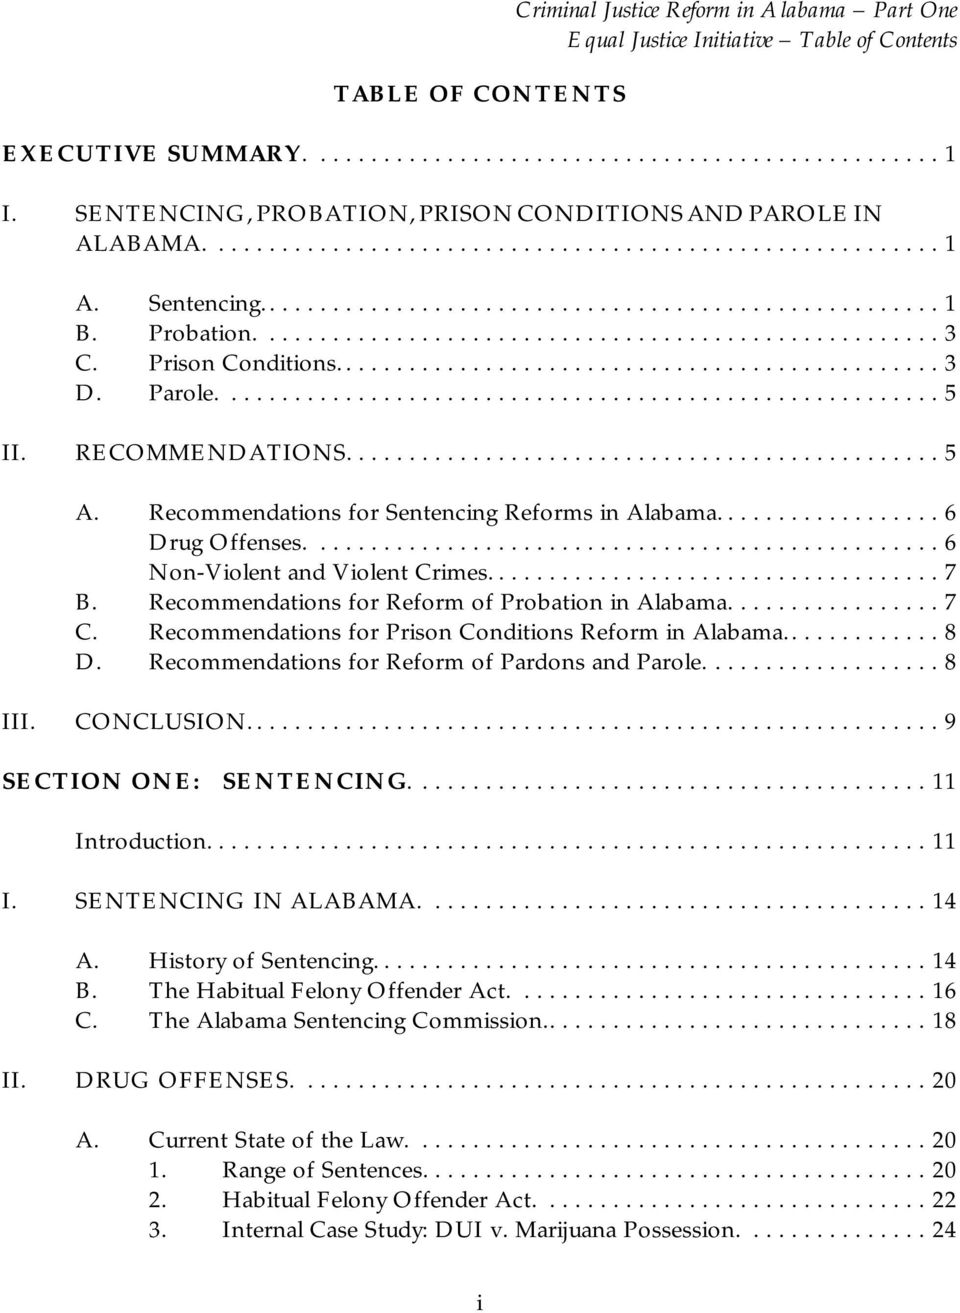 ...6 Non-Violent and Violent Crimes...7 B. Recommendations for Reform of Probation in Alabama................. 7 C. Recommendations for Prison Conditions Reform in Alabama............. 8 D.